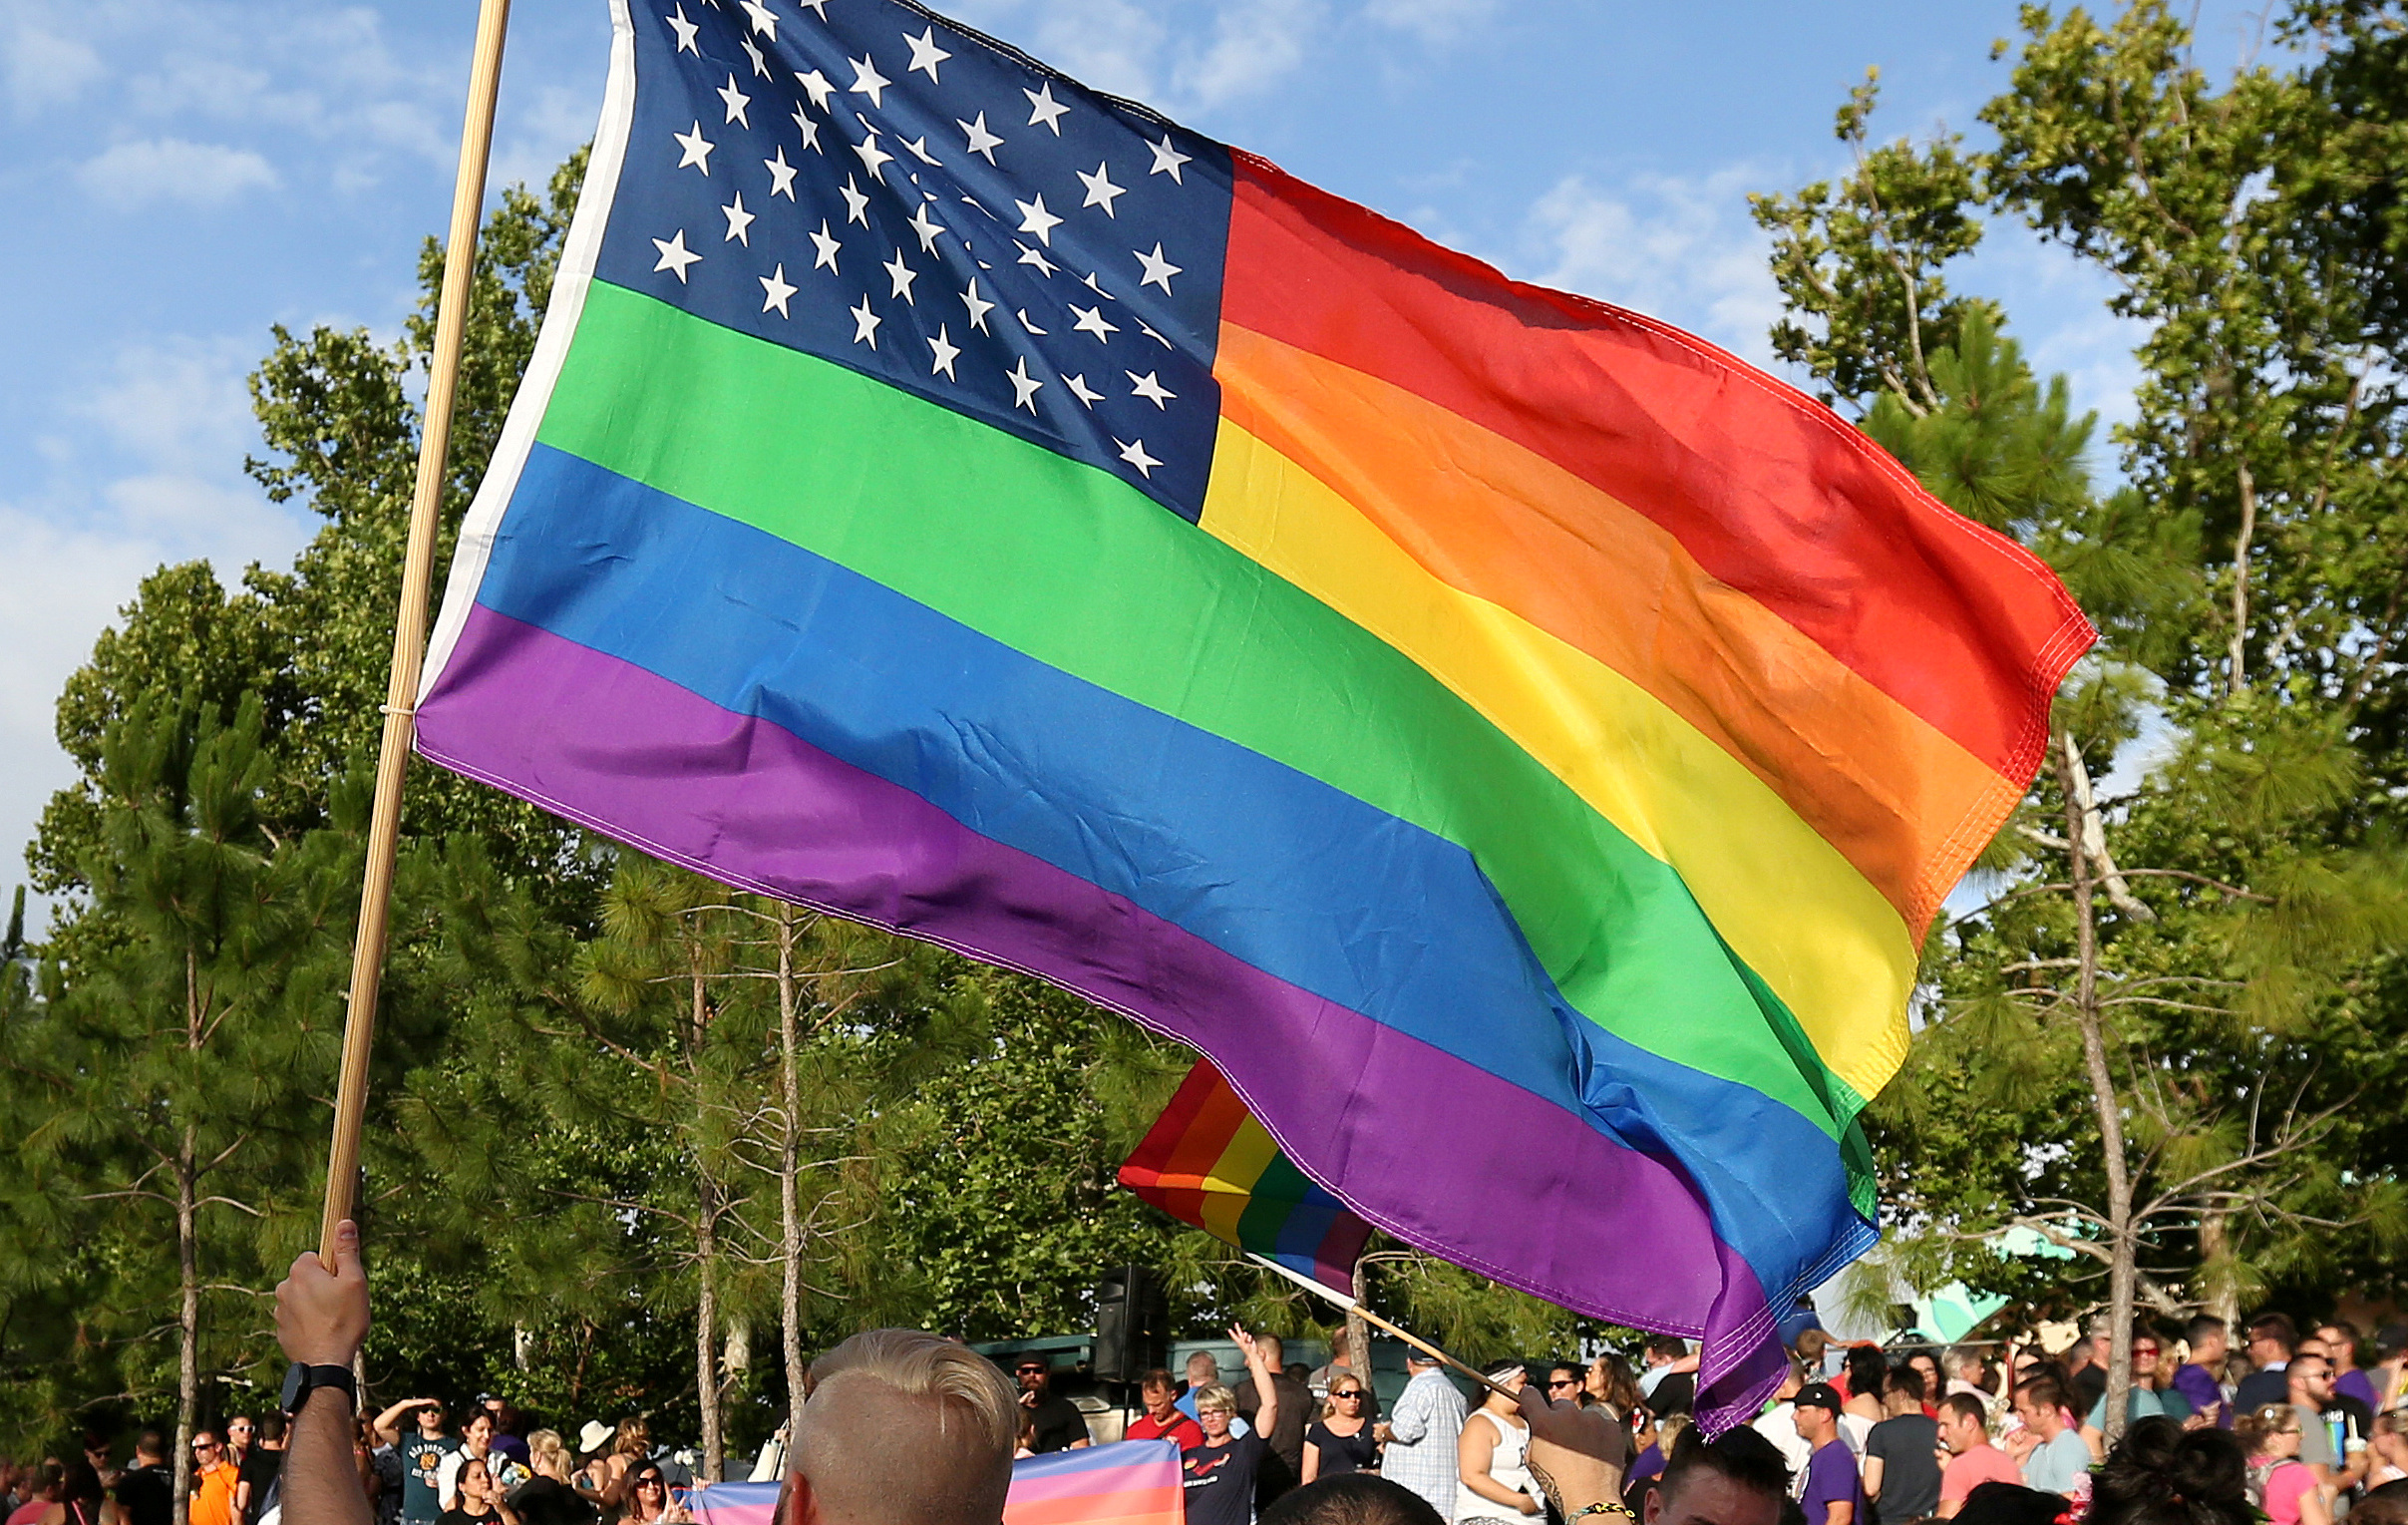 FILE PHOTO - A rainbow U.S. flag is held up during a vigil for the Pulse night club victims in Orlando